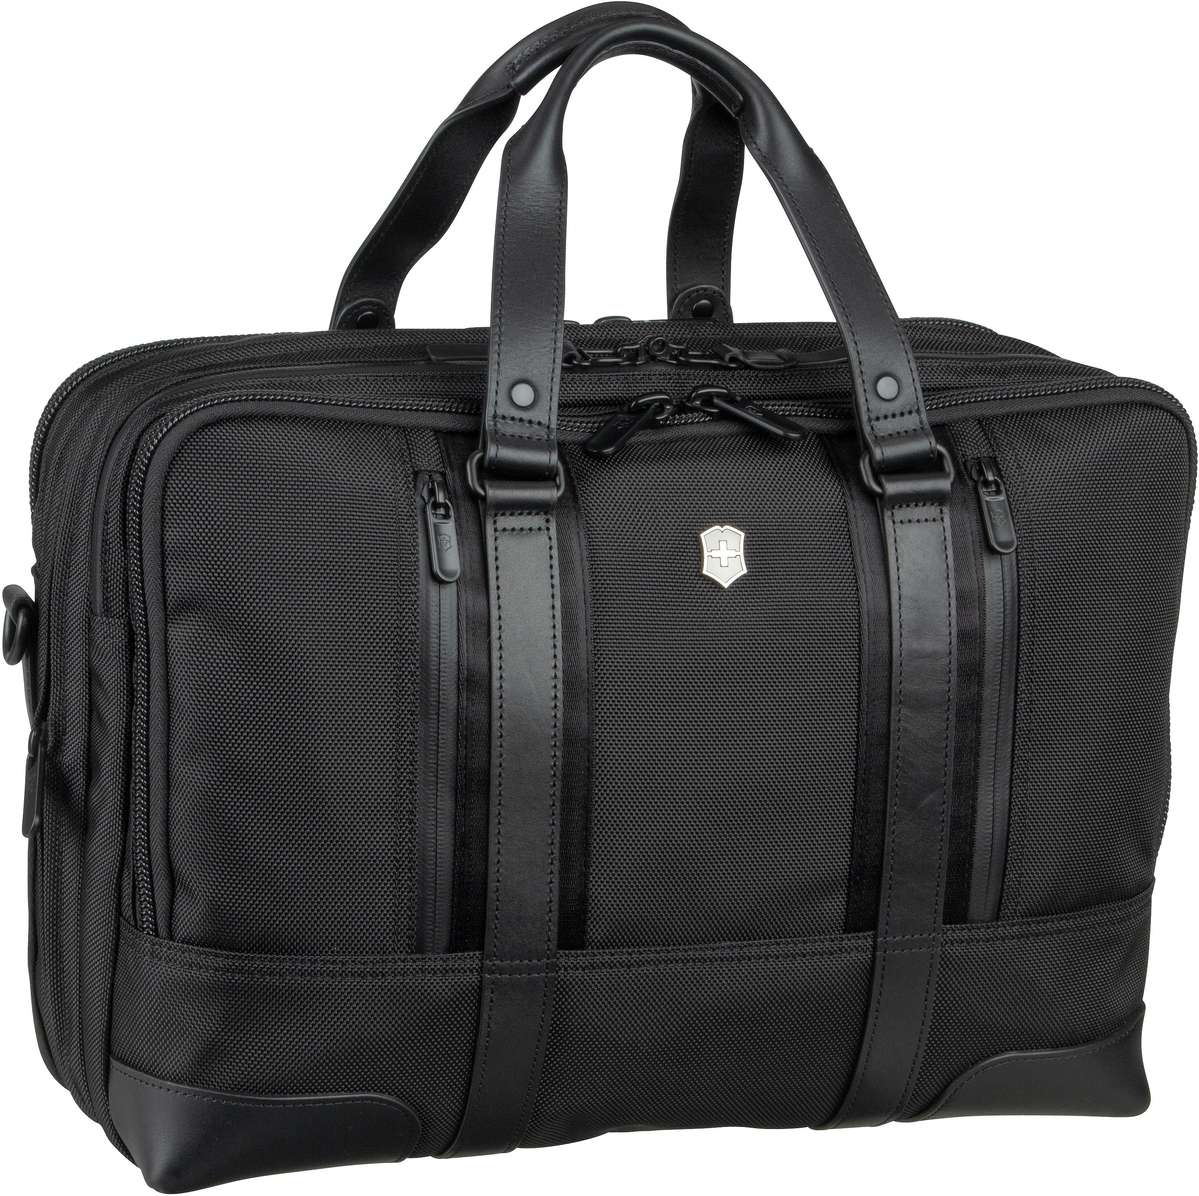 Businesstaschen für Frauen - Victorinox Aktentasche Lexicon Professional Lexington 15 Black (17 Liter)  - Onlineshop Taschenkaufhaus